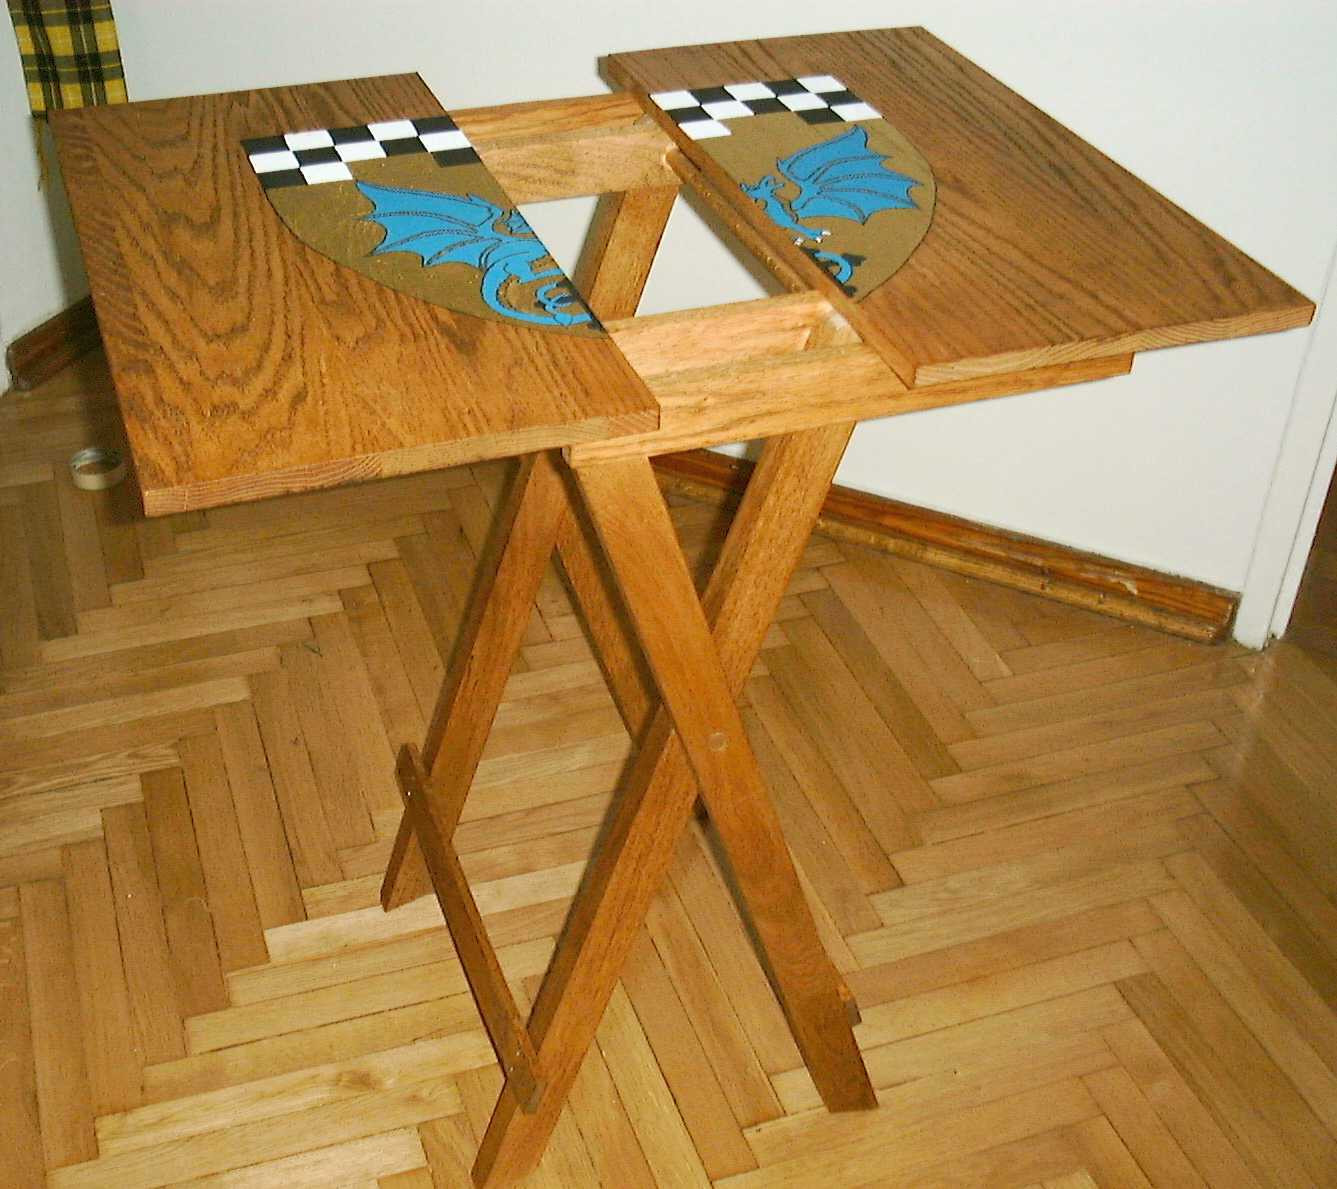 Best ideas about DIY Folding Table . Save or Pin Build DIY Small wood folding table plans Plans Wooden Now.